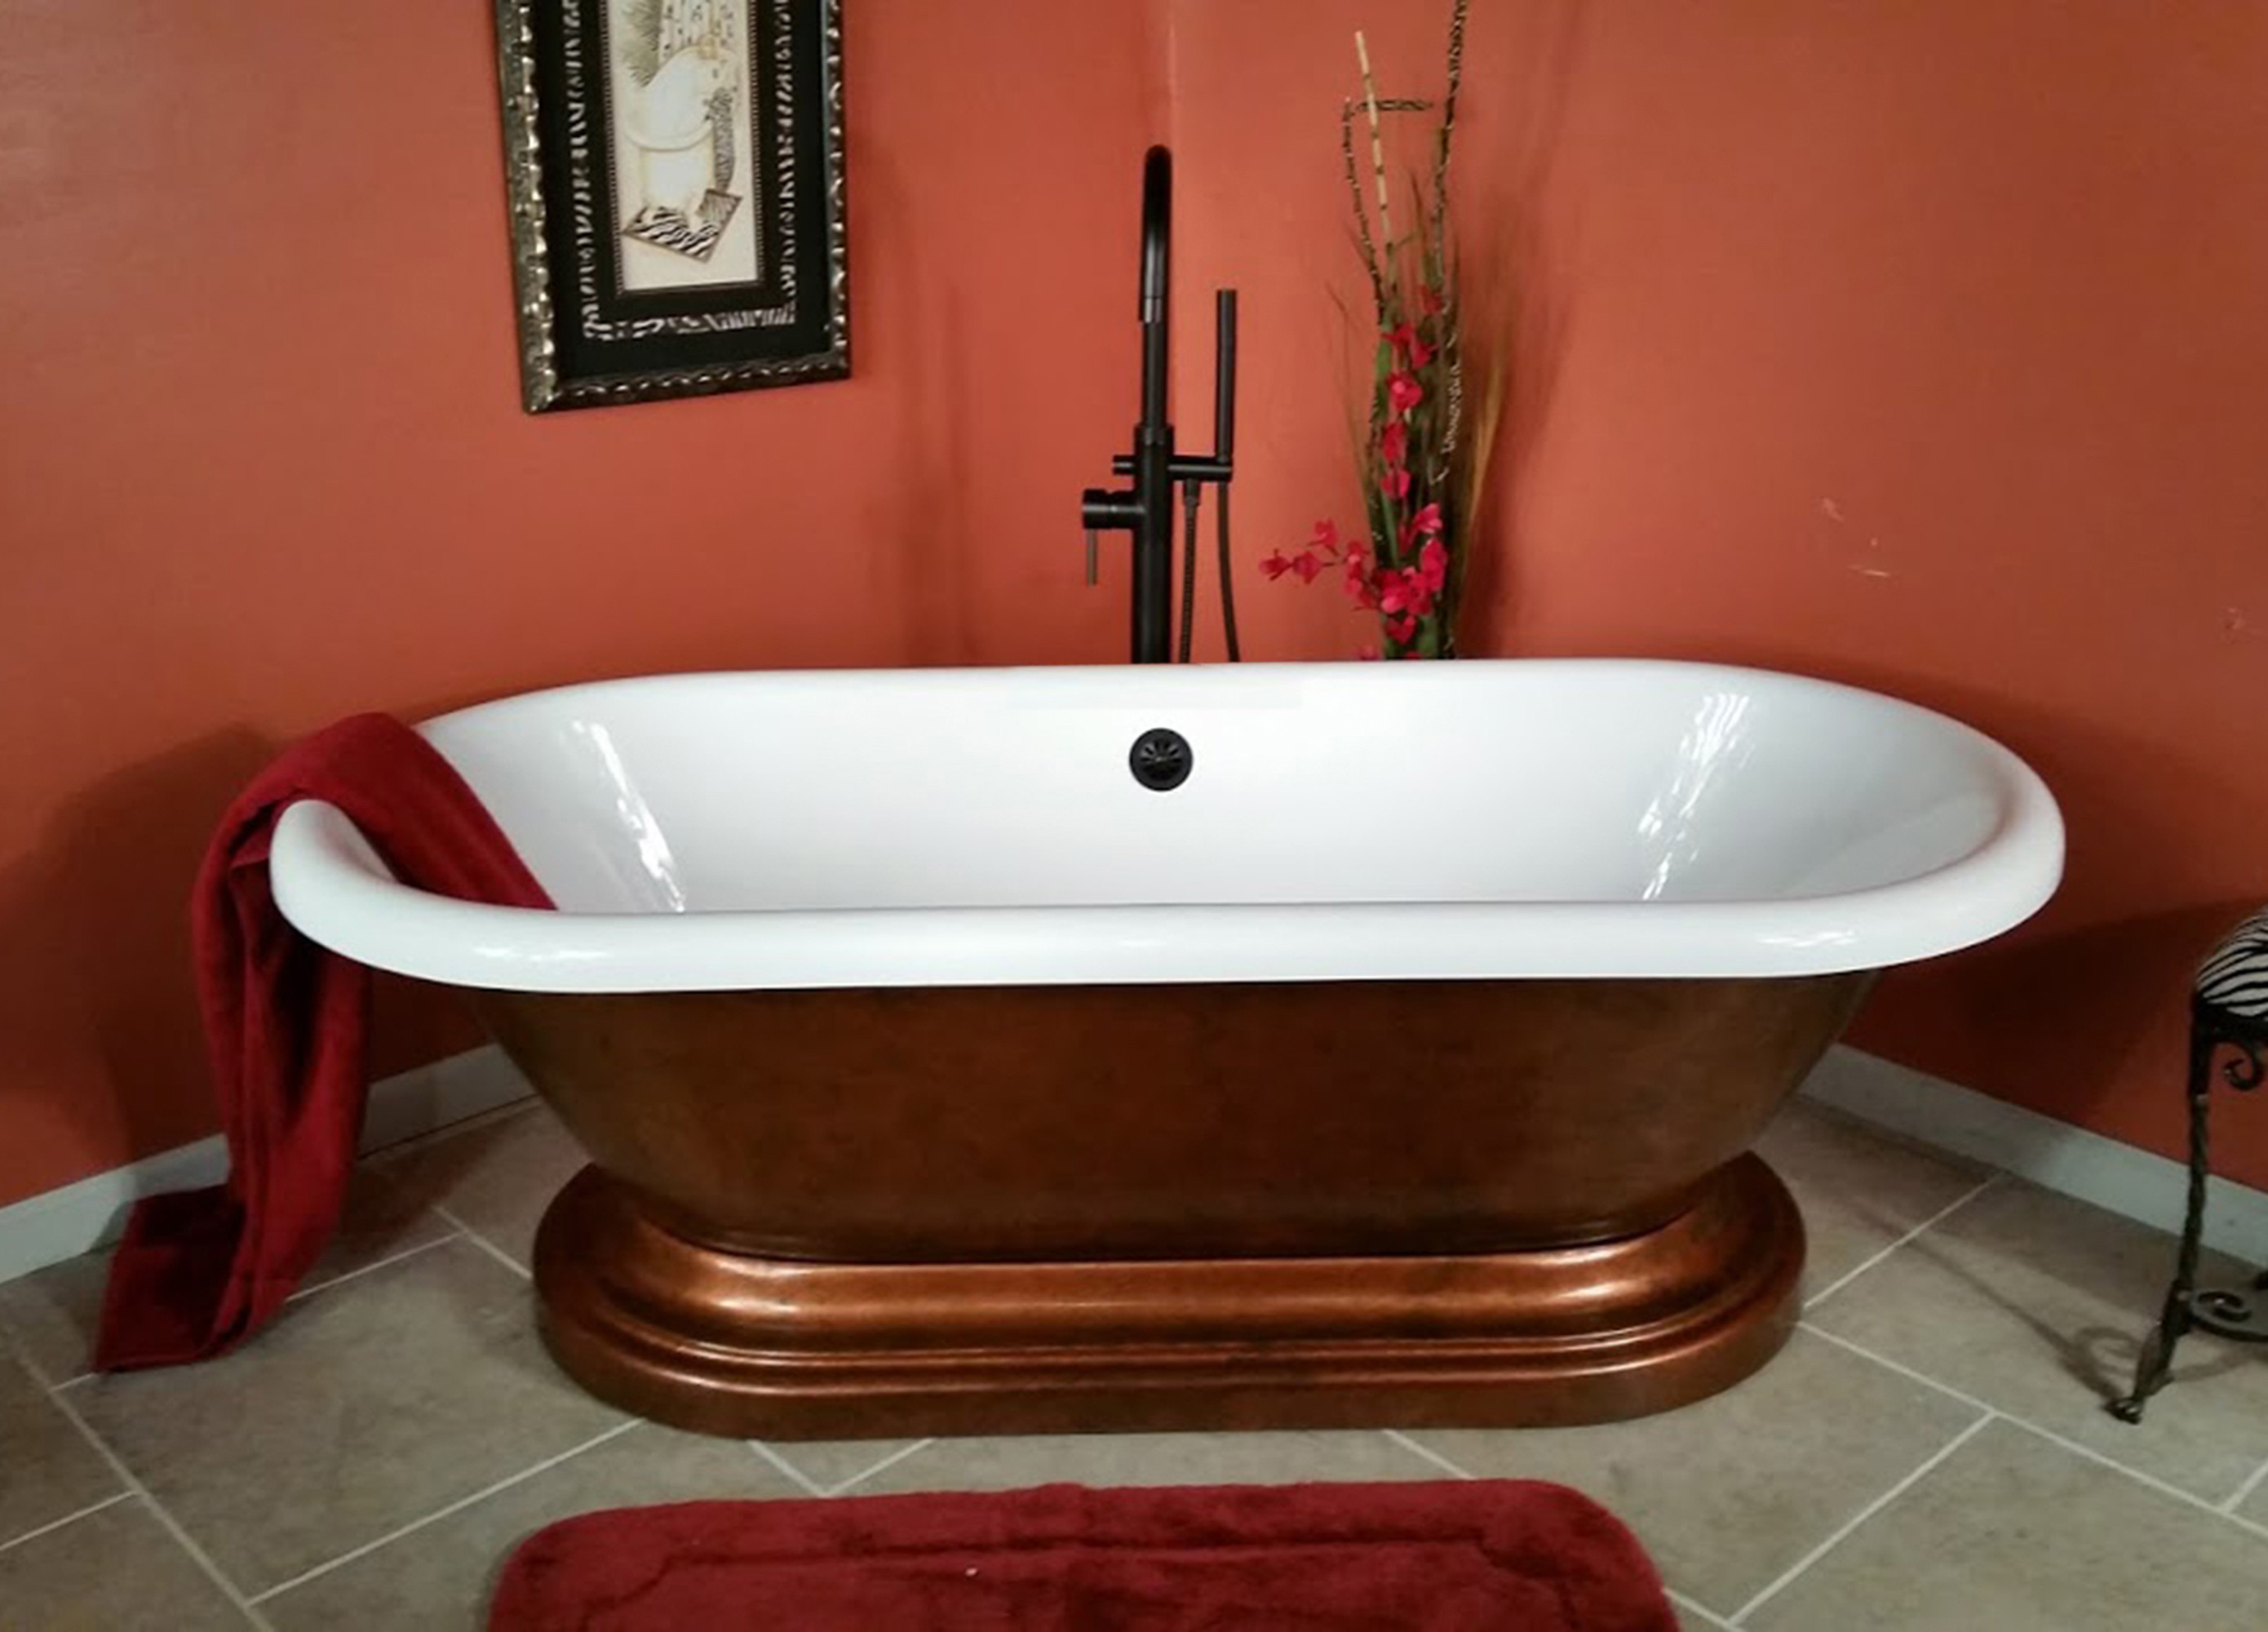 Cambridge ADE60P-NH-CB Double Ended Pedestal Tub With No Faucet Drillings